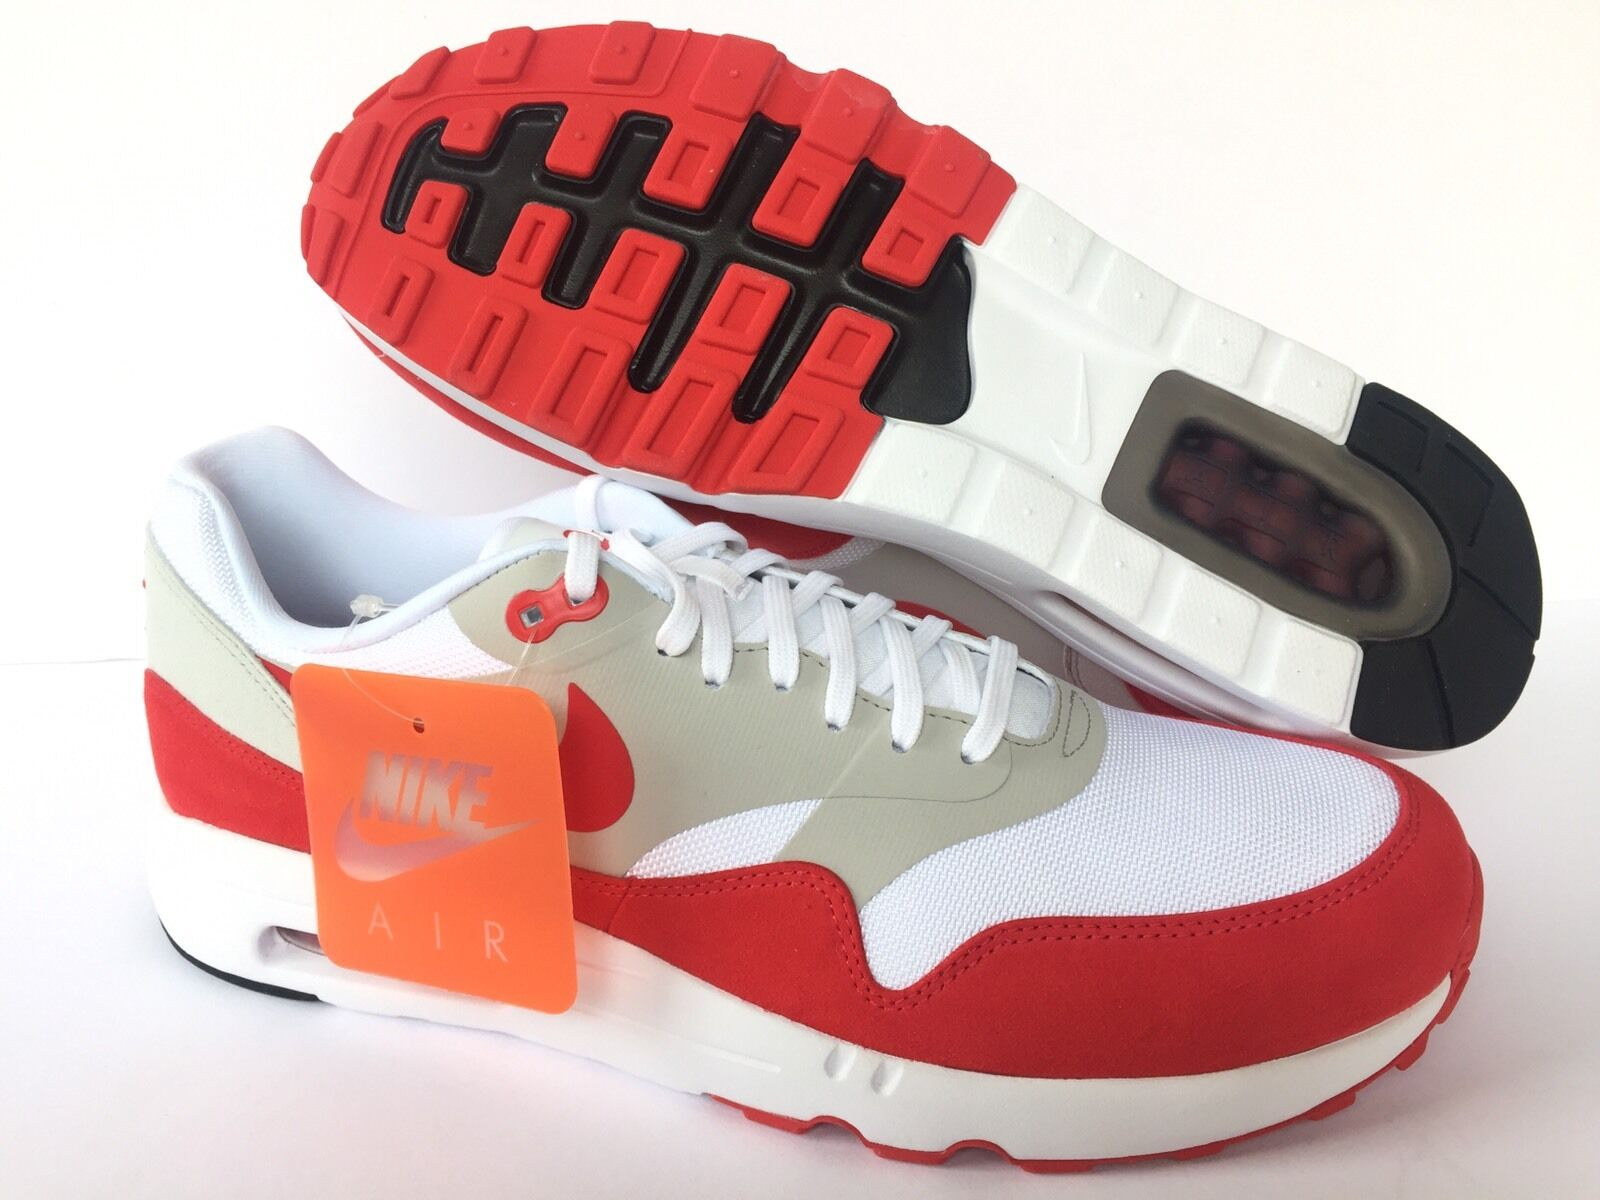 NIKE AIR MAX 1 ULTRA 2.0 LE NEW WHITE/RED Price reduction US MEN Price reduction Wild casual shoes